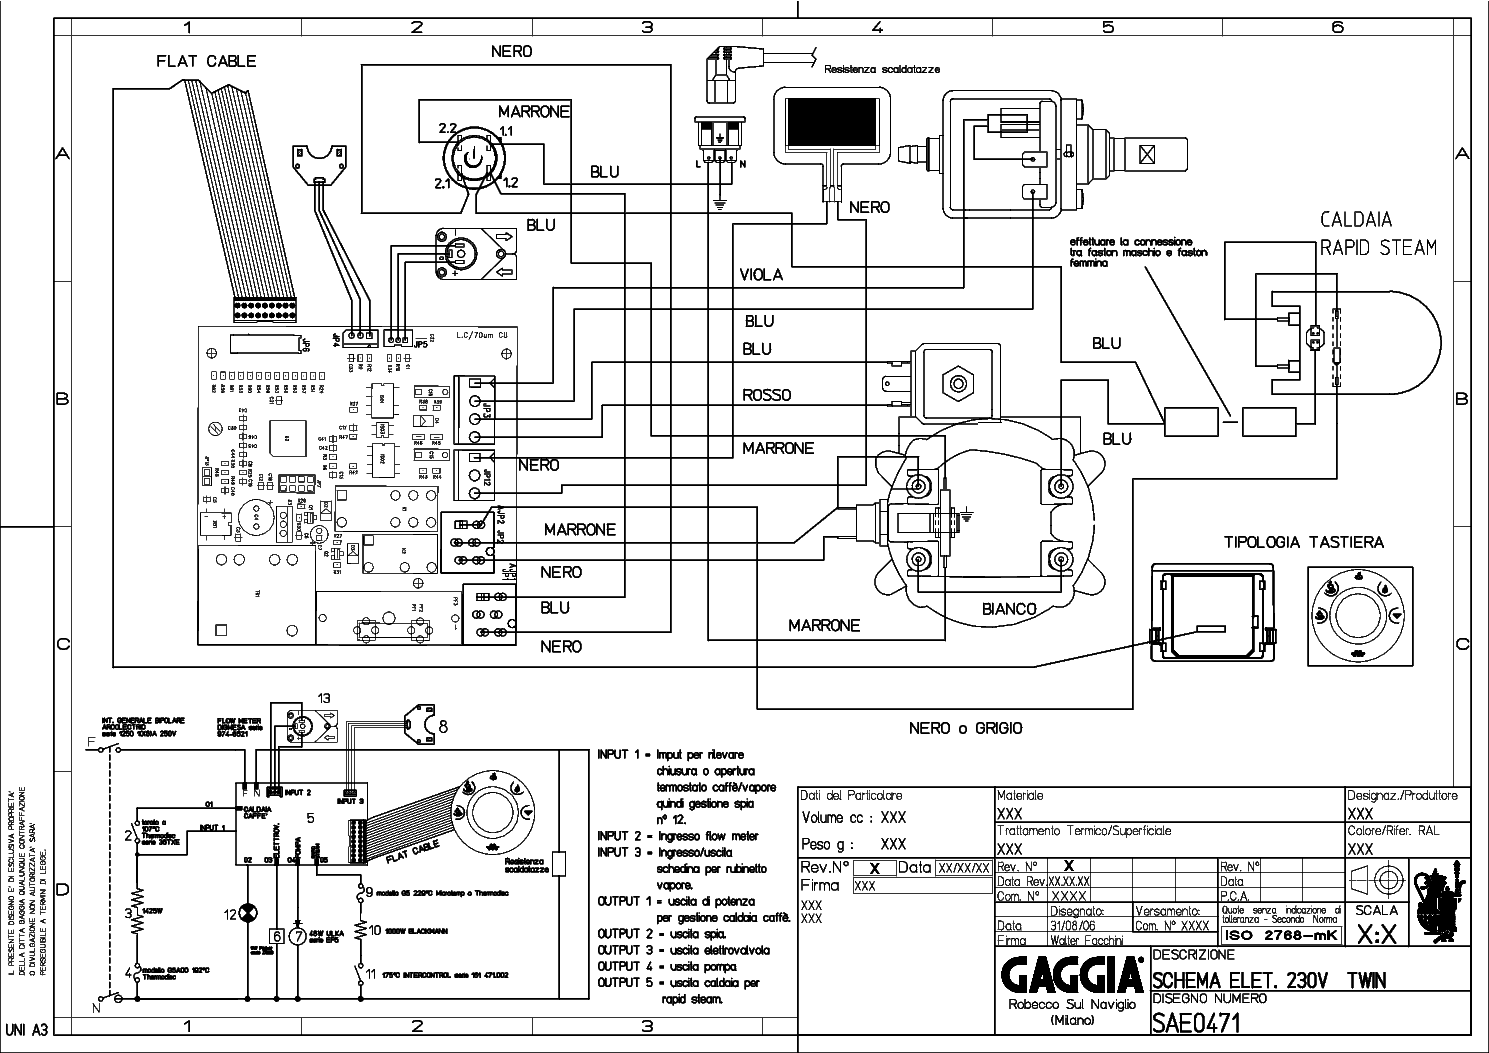 GAGGIA TITANIUM 230 Service Manual download, schematics